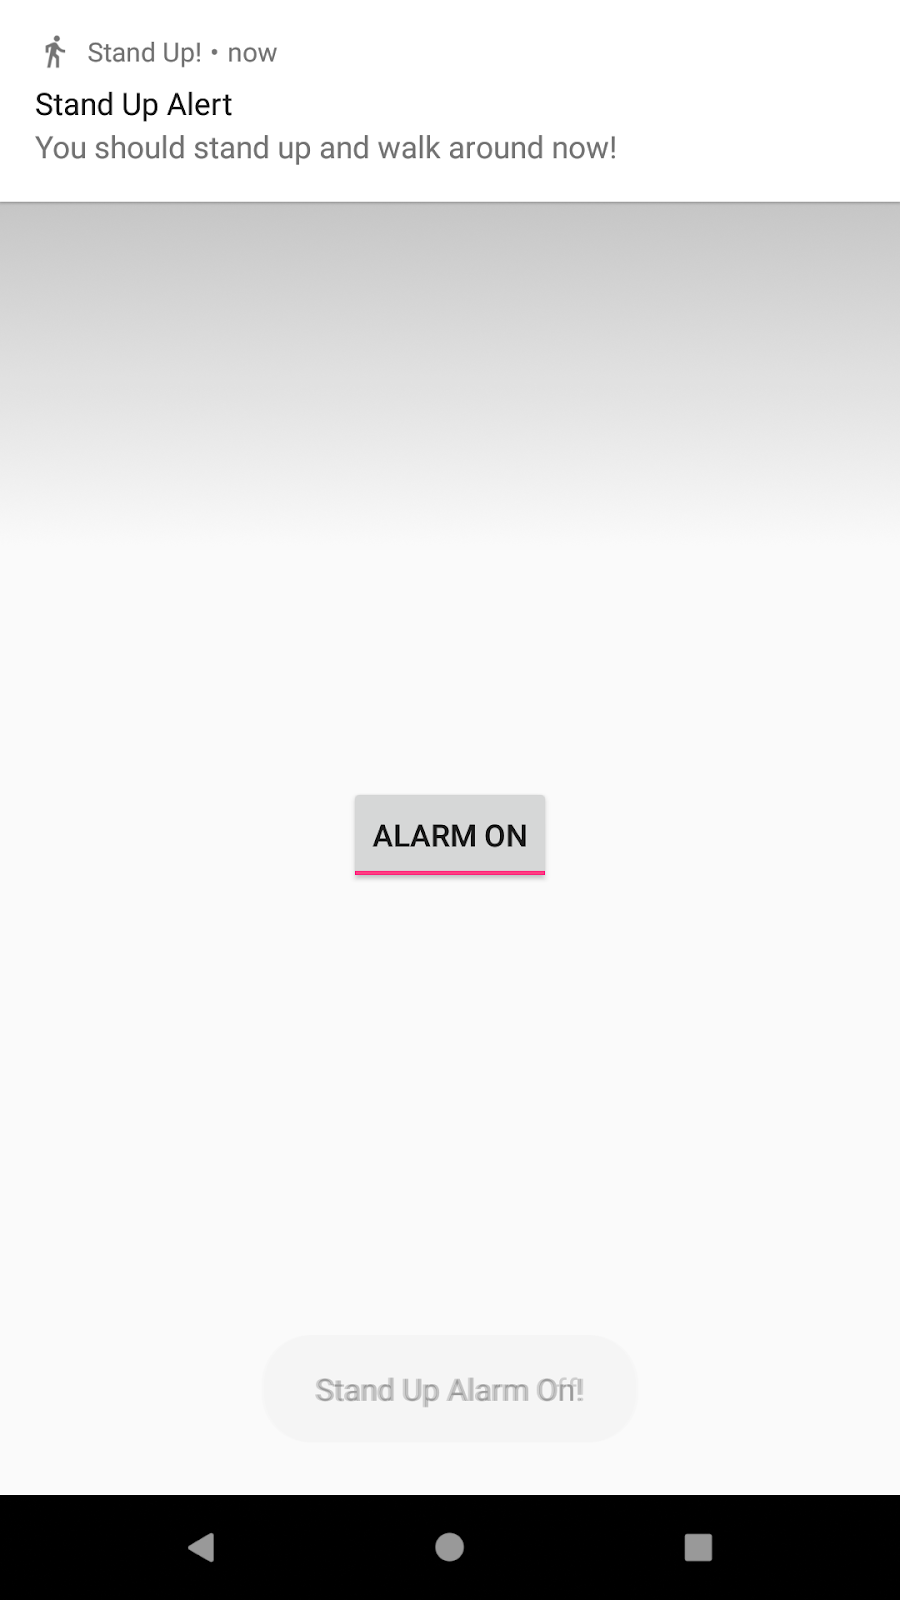 Notification is shown when toggle button is turned on.